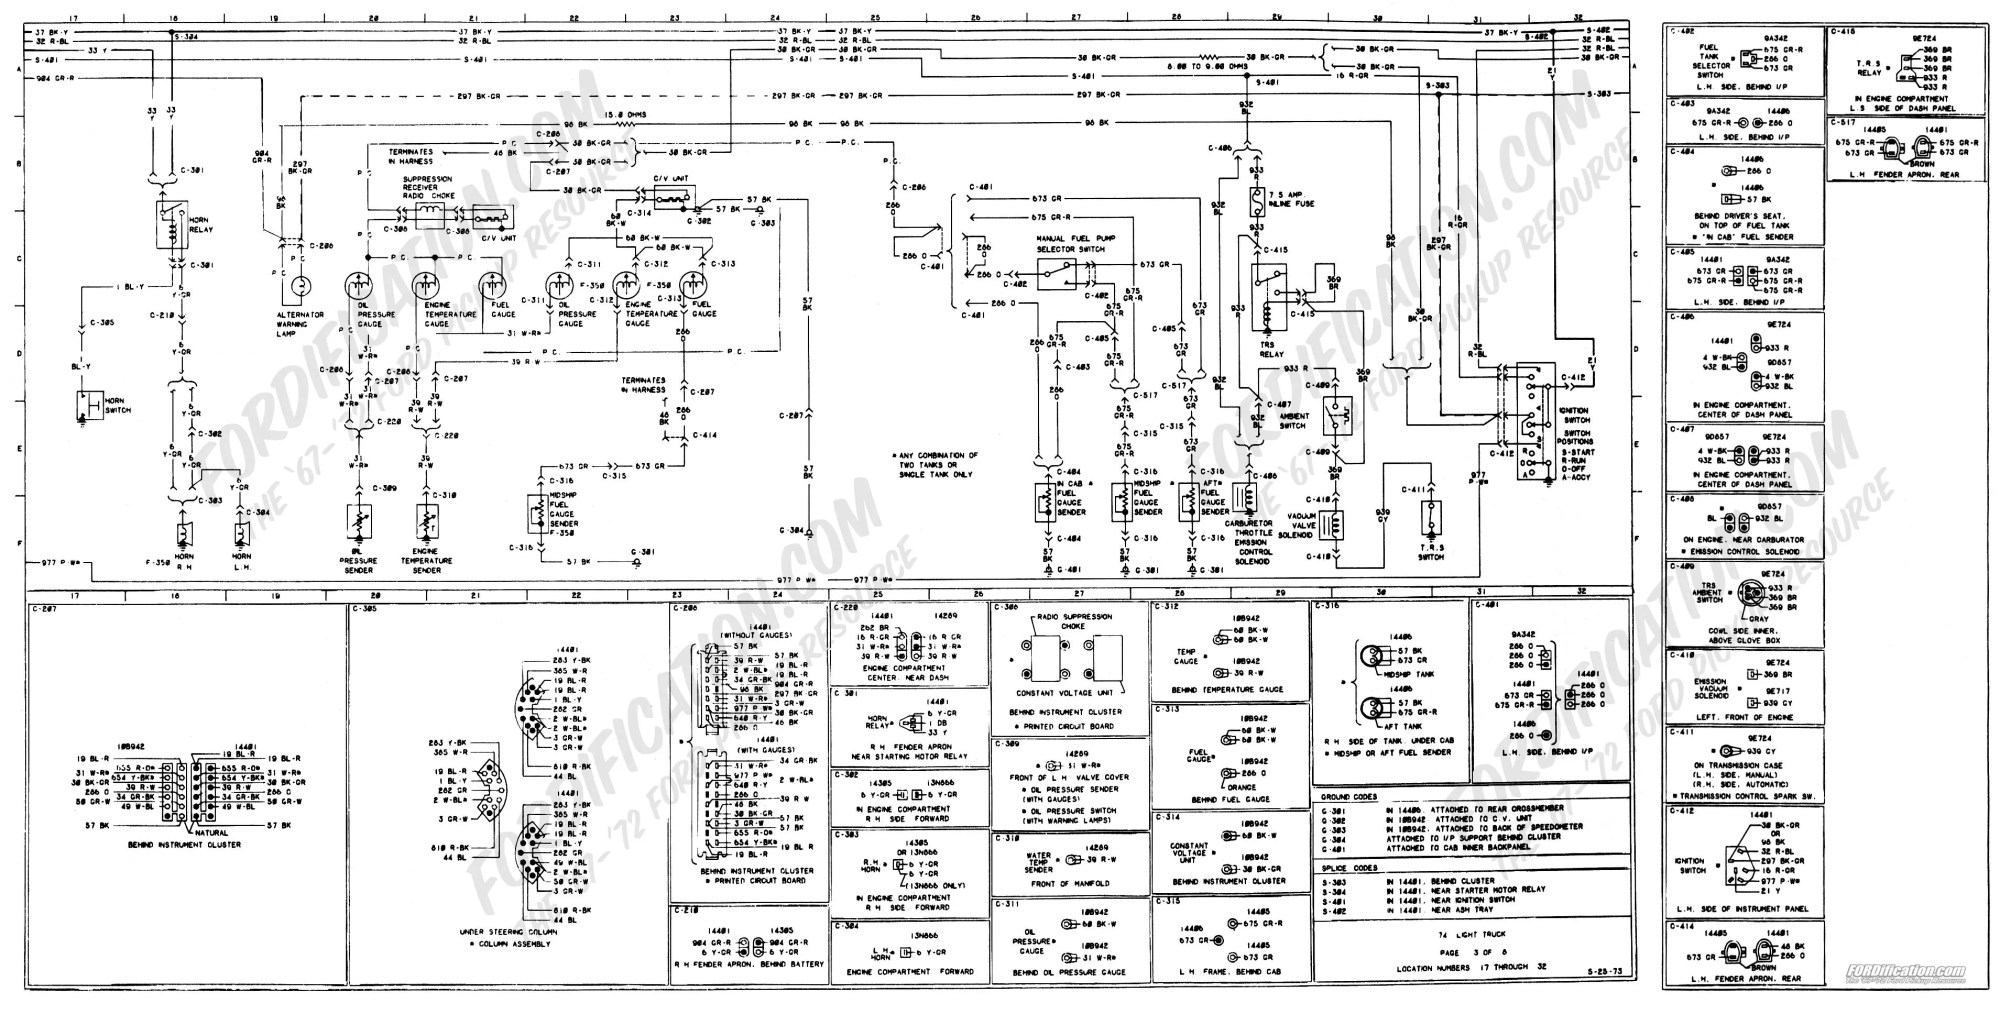 hight resolution of 1976 f100 wiring diagram wiring schematic diagram rh asparklingjourney com 1999 international 8100 fuse box diagram